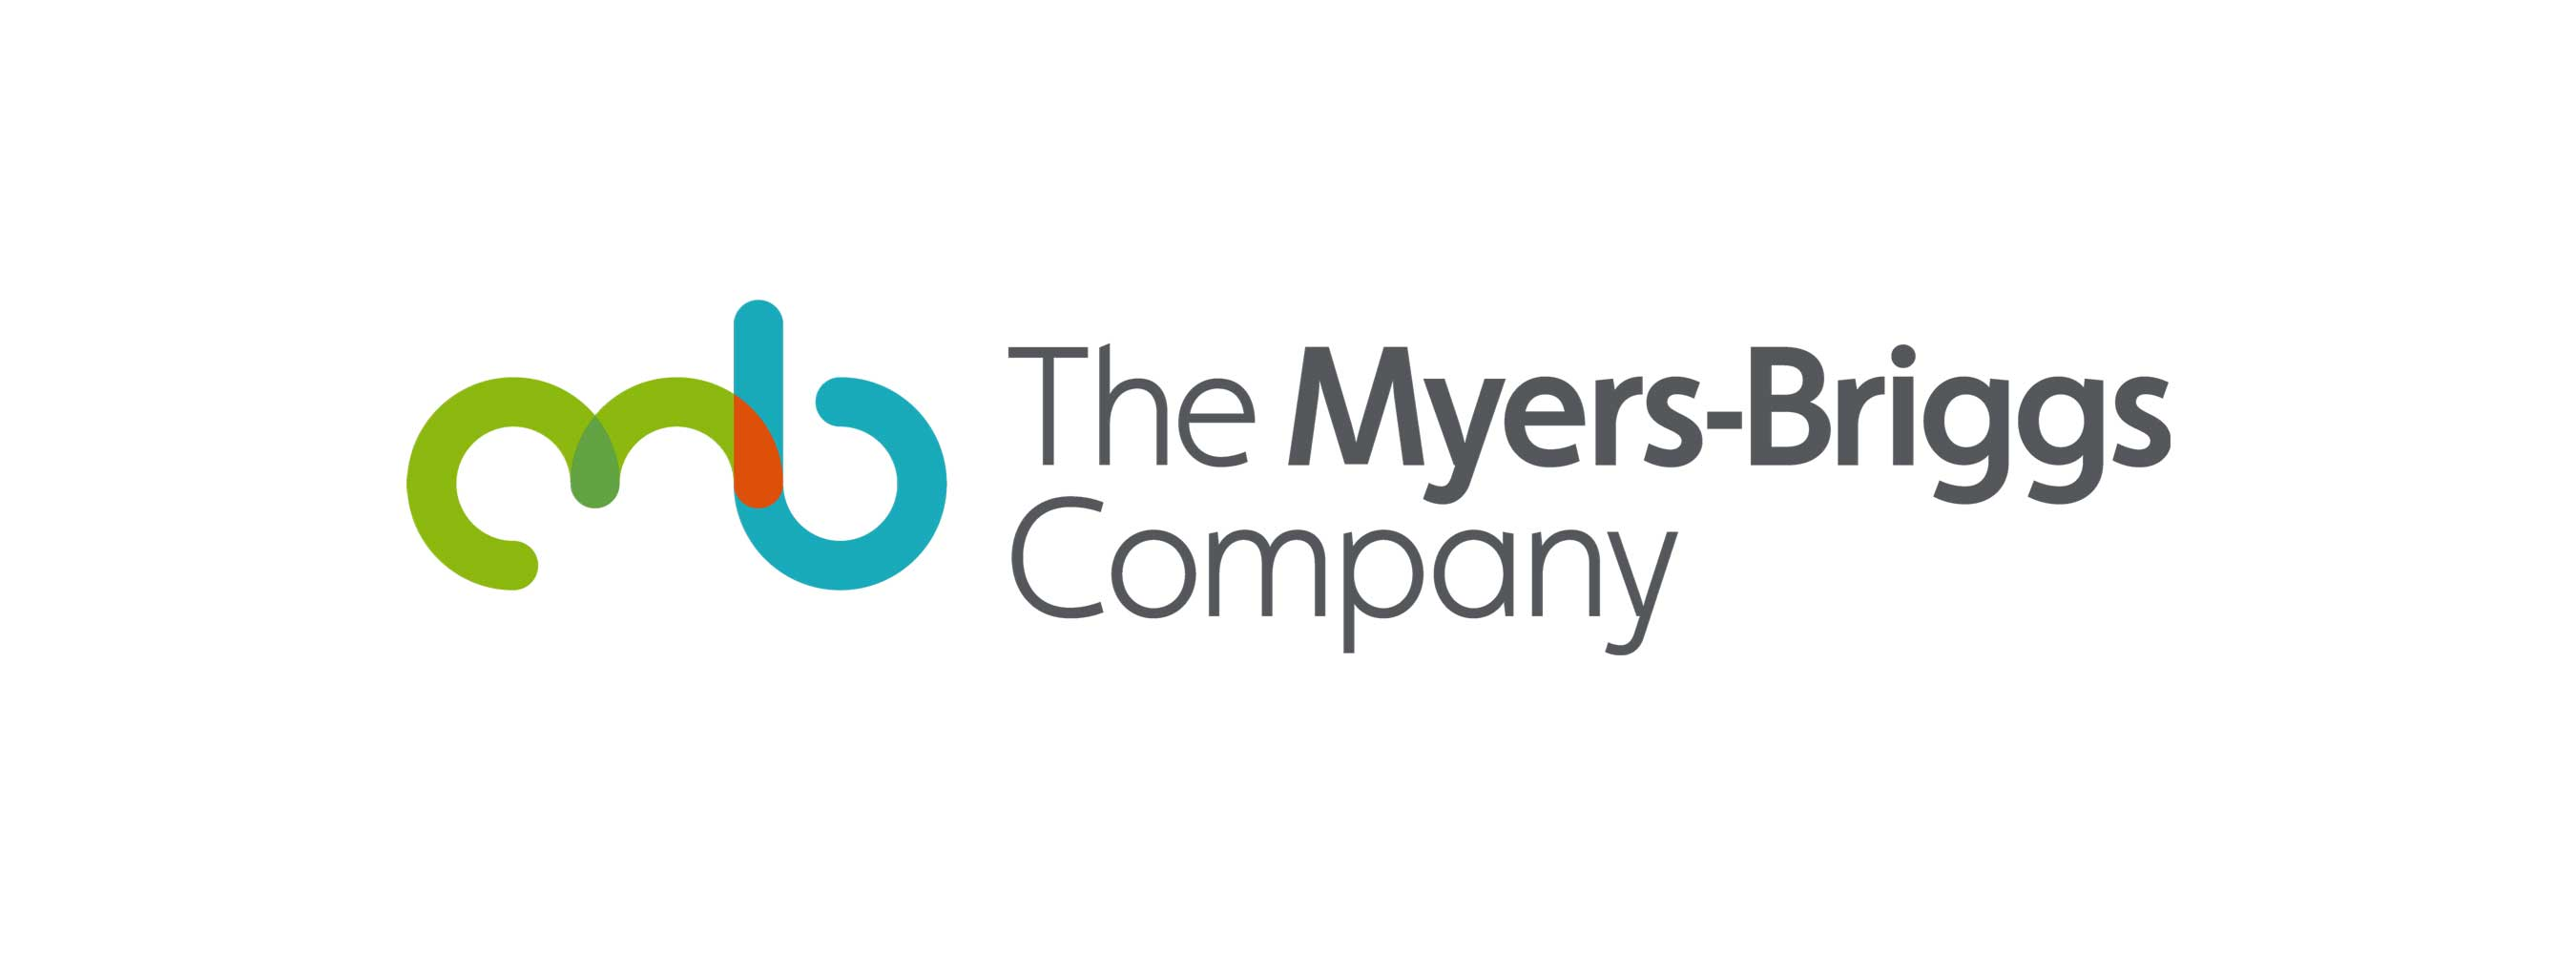 Introducing The Myers Briggs Company